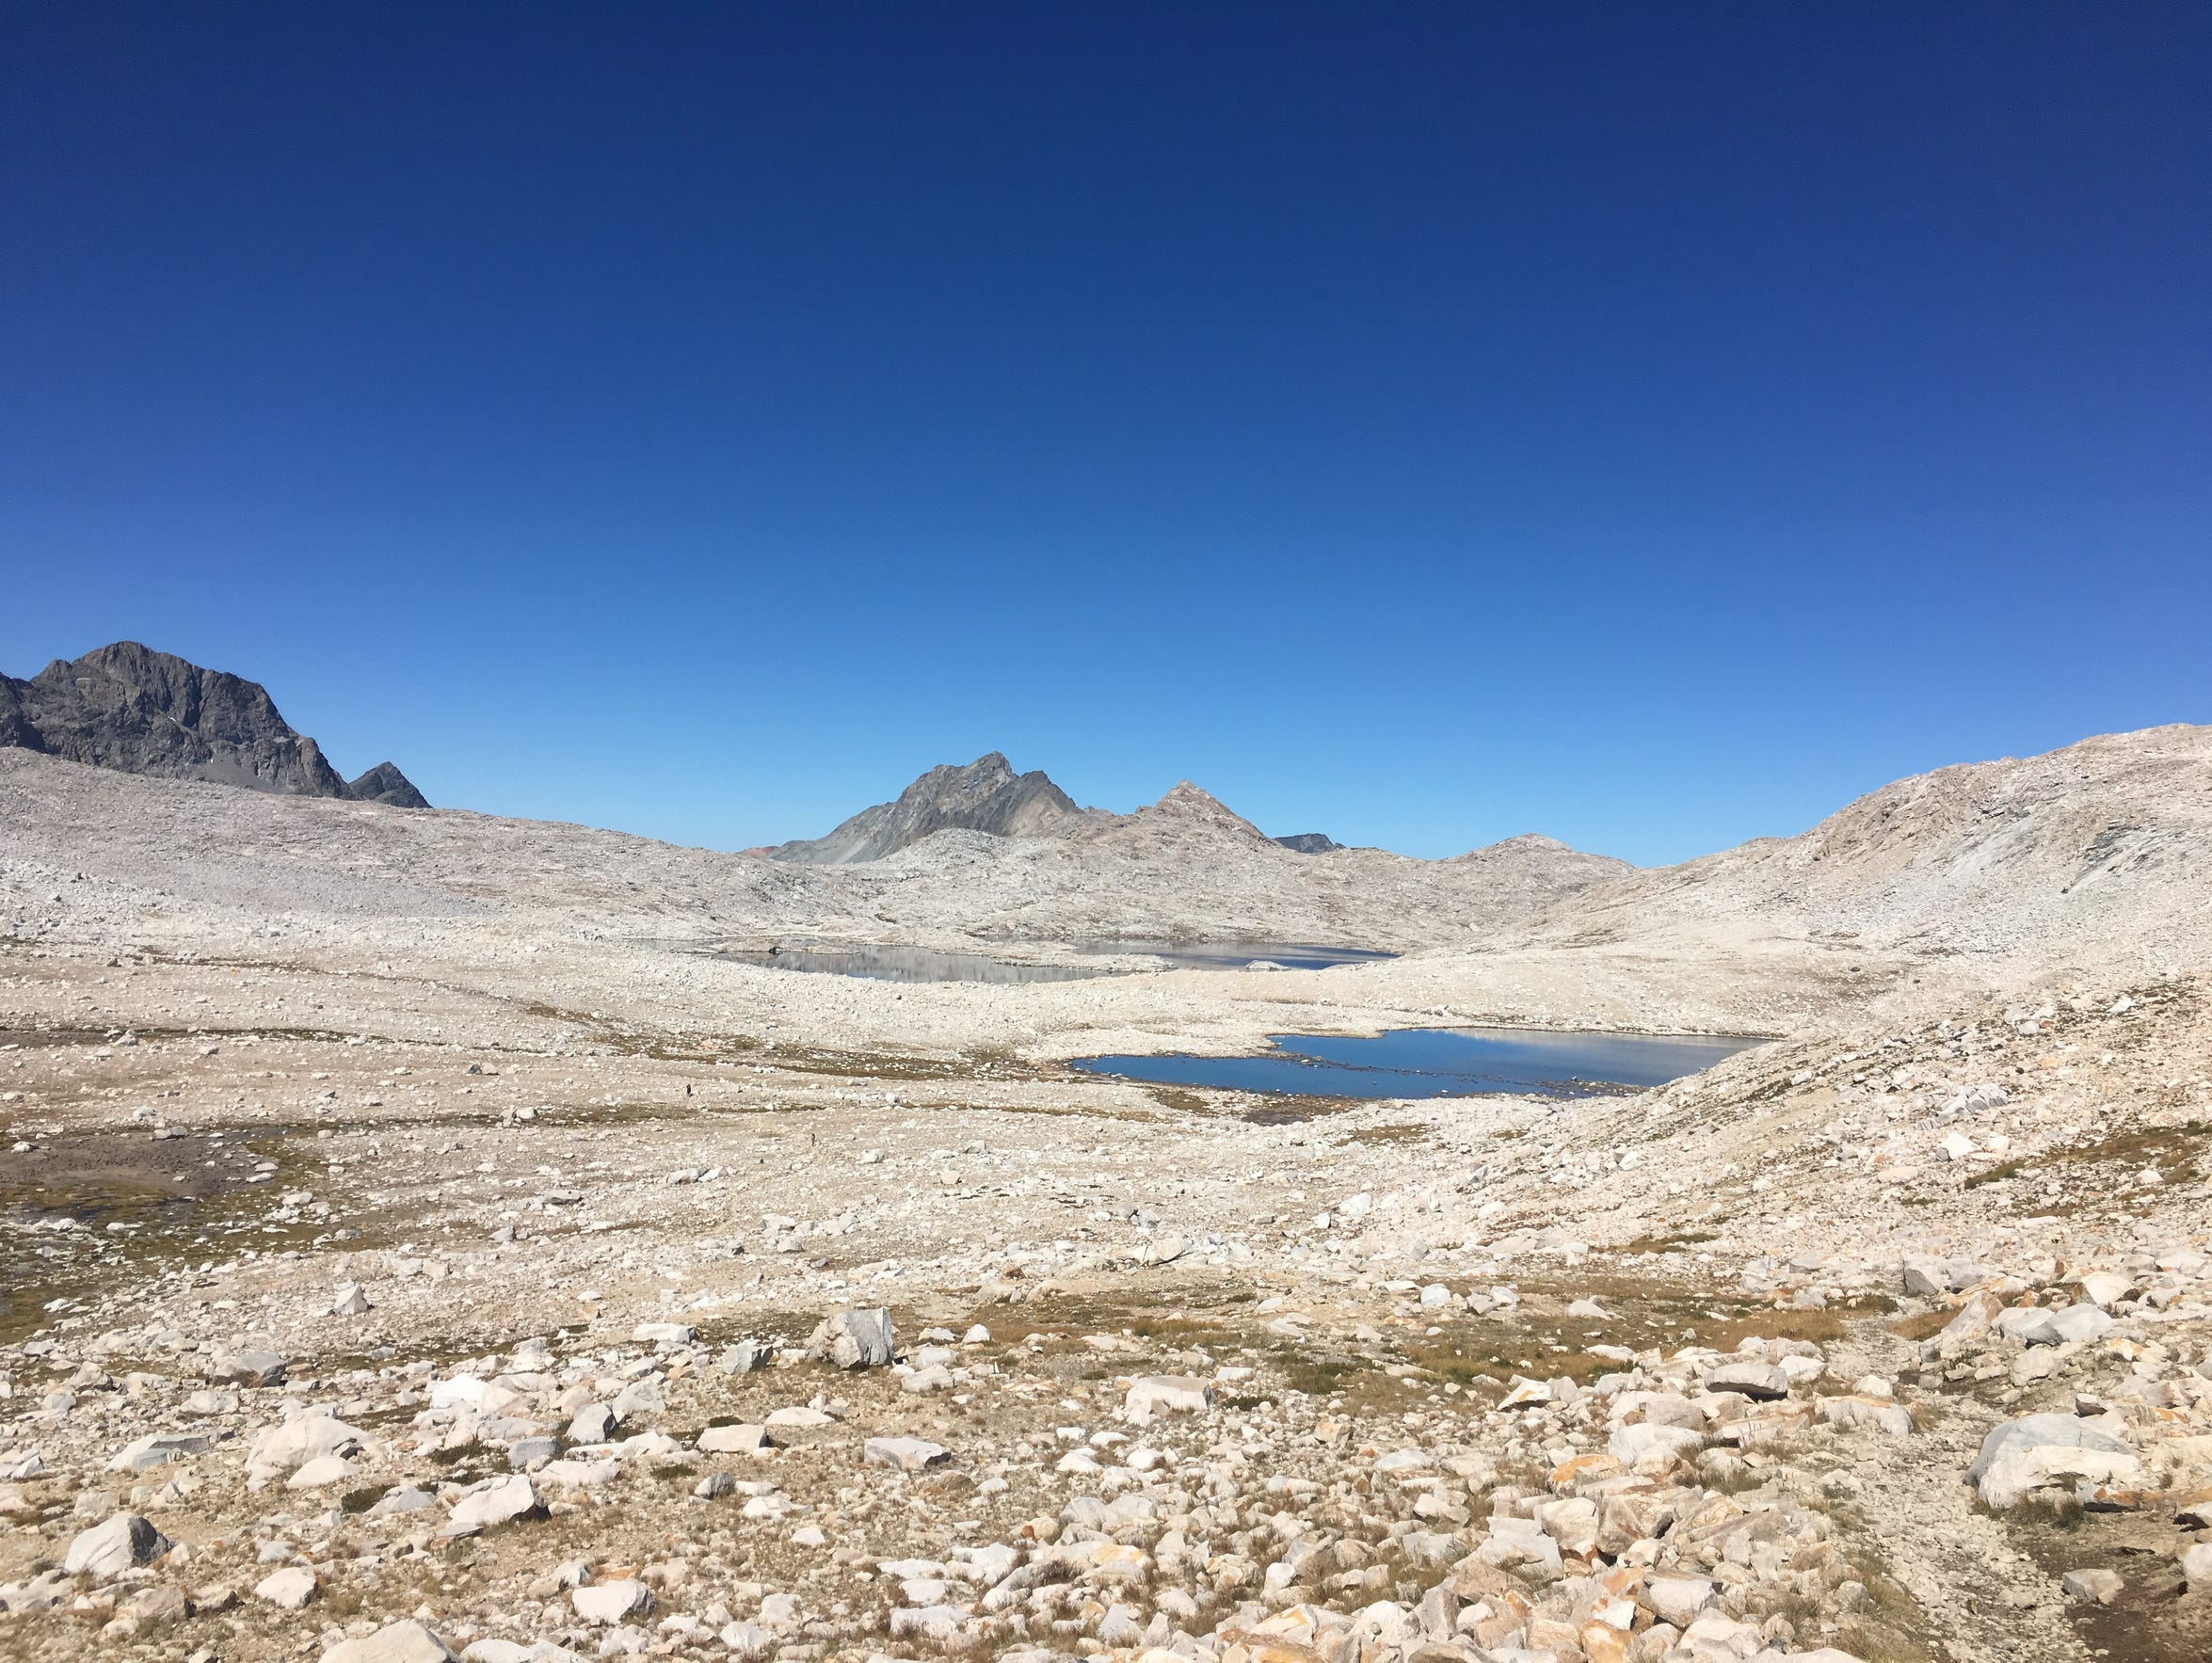 Lake McDermand as seen from Muir Pass on Sept. 17.